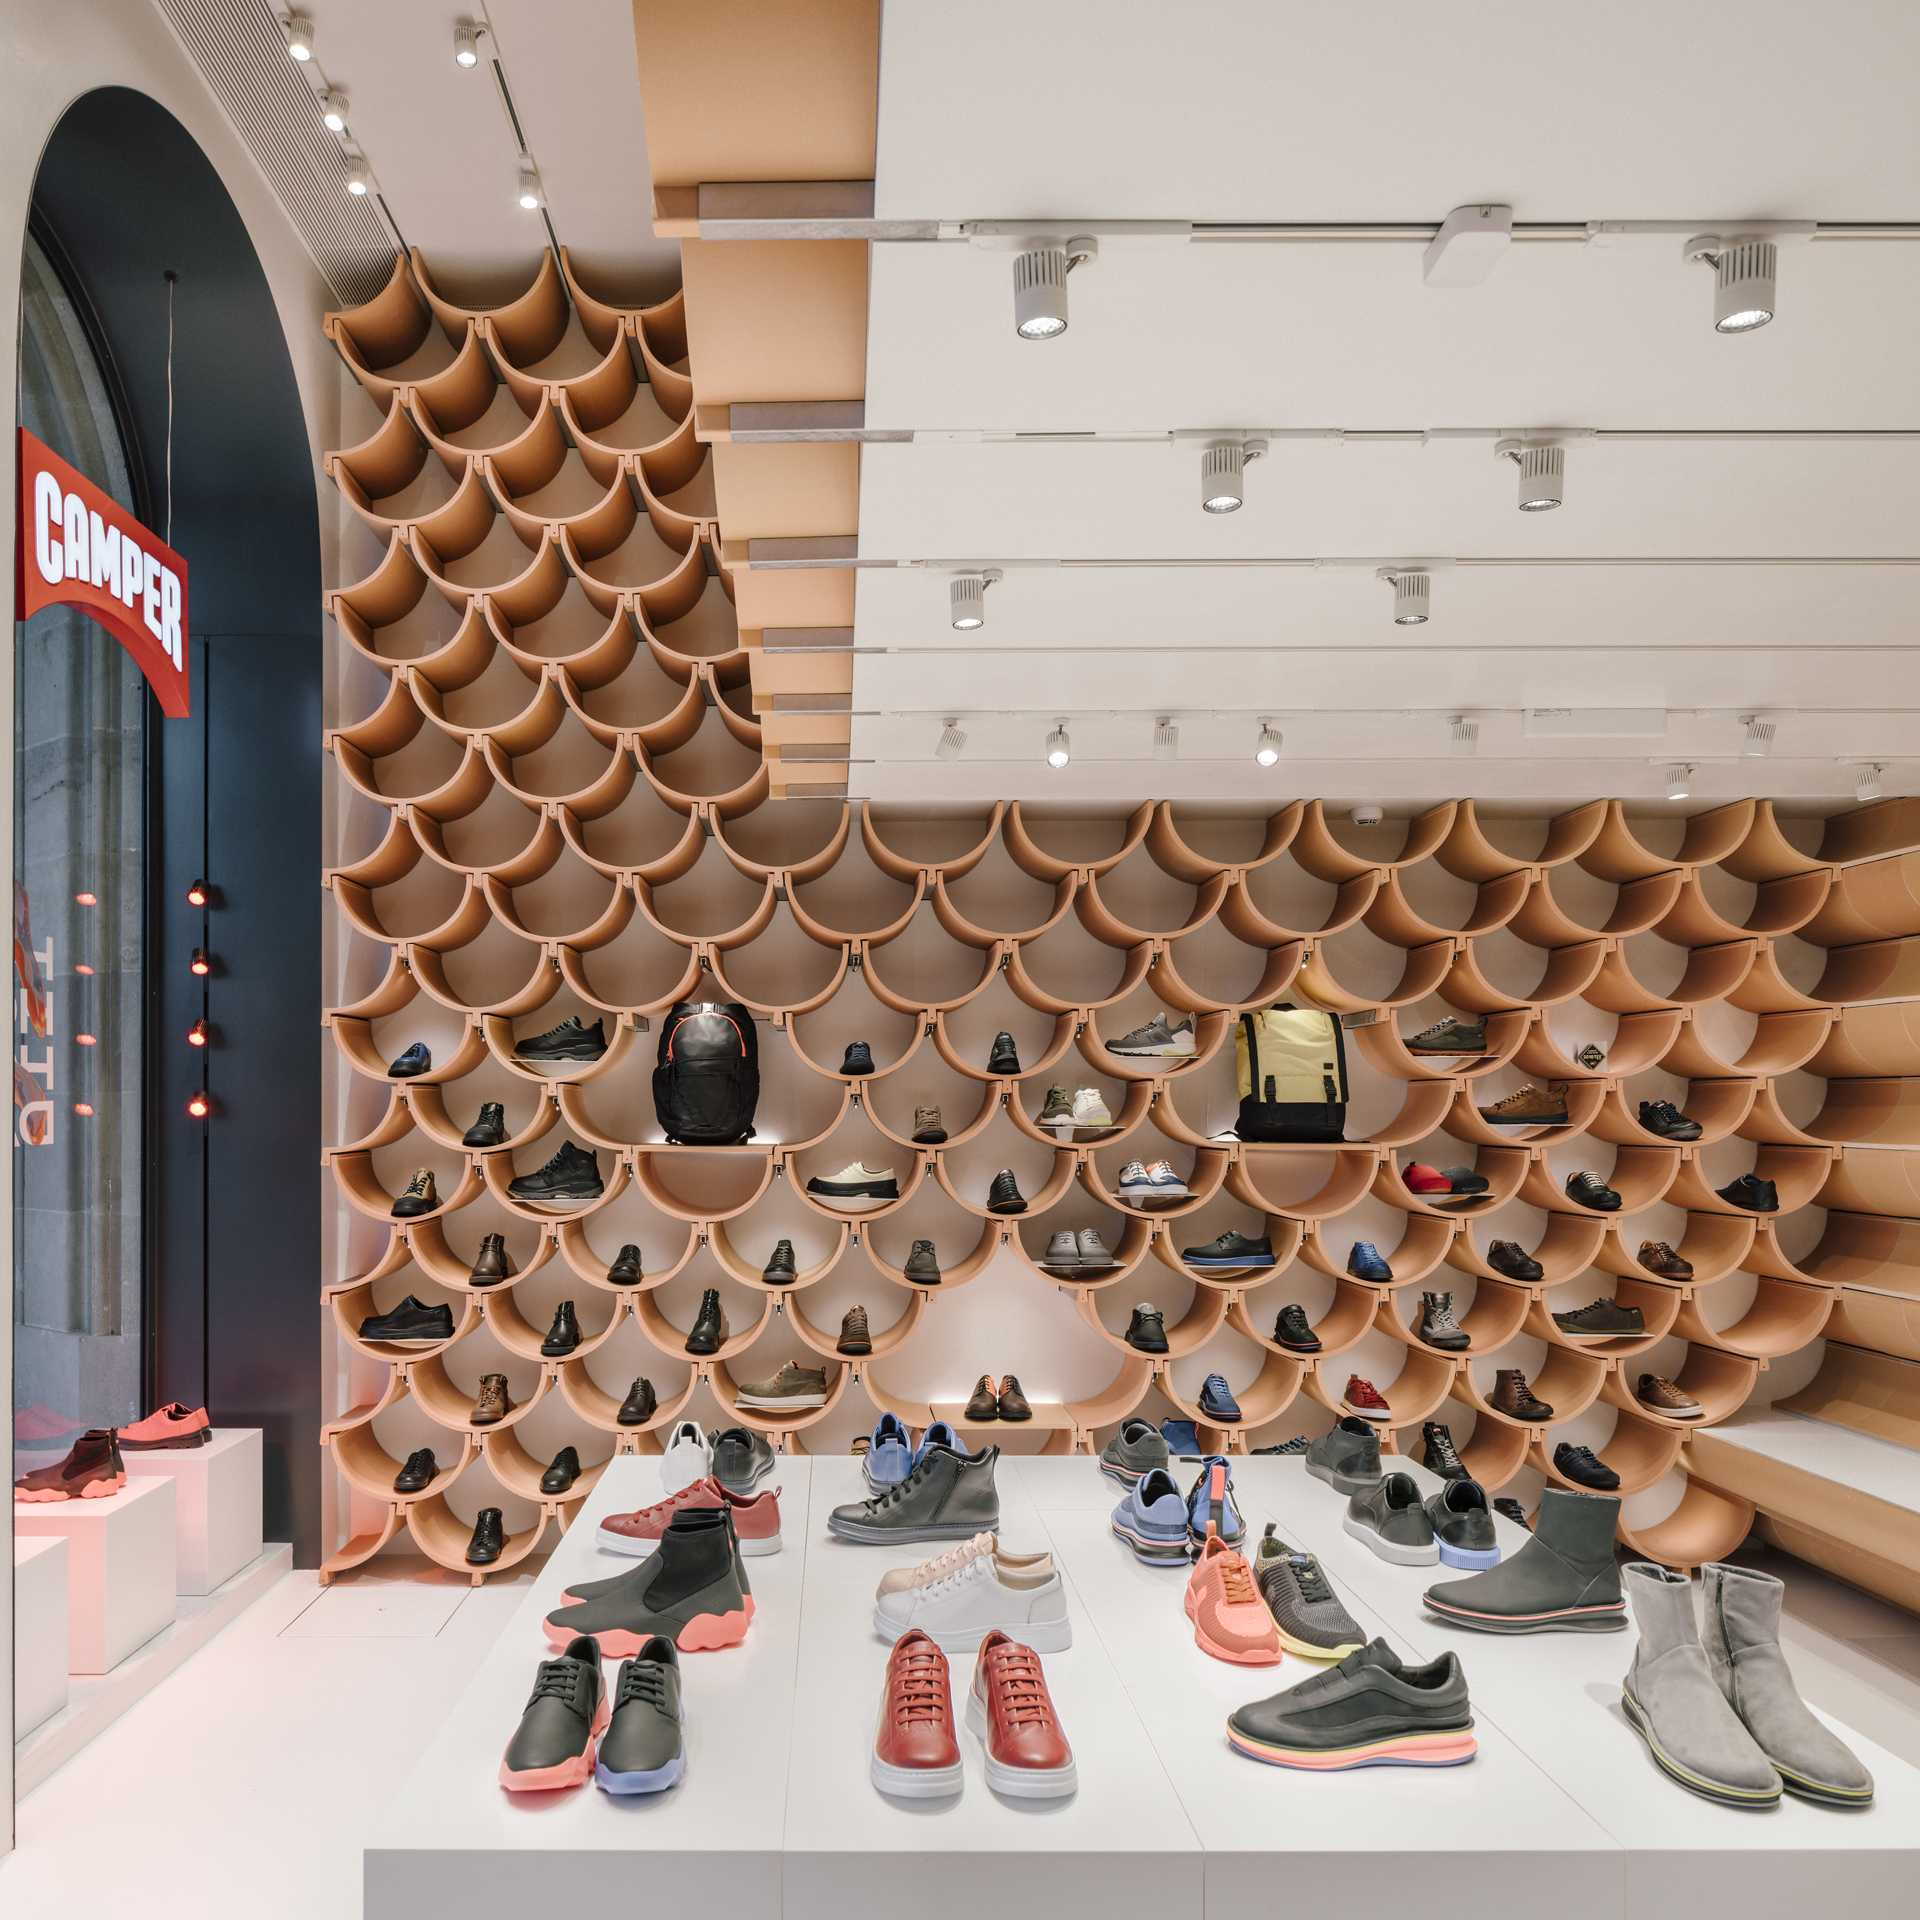 Camper shop in Paseo de Gracia  - 58 02 35